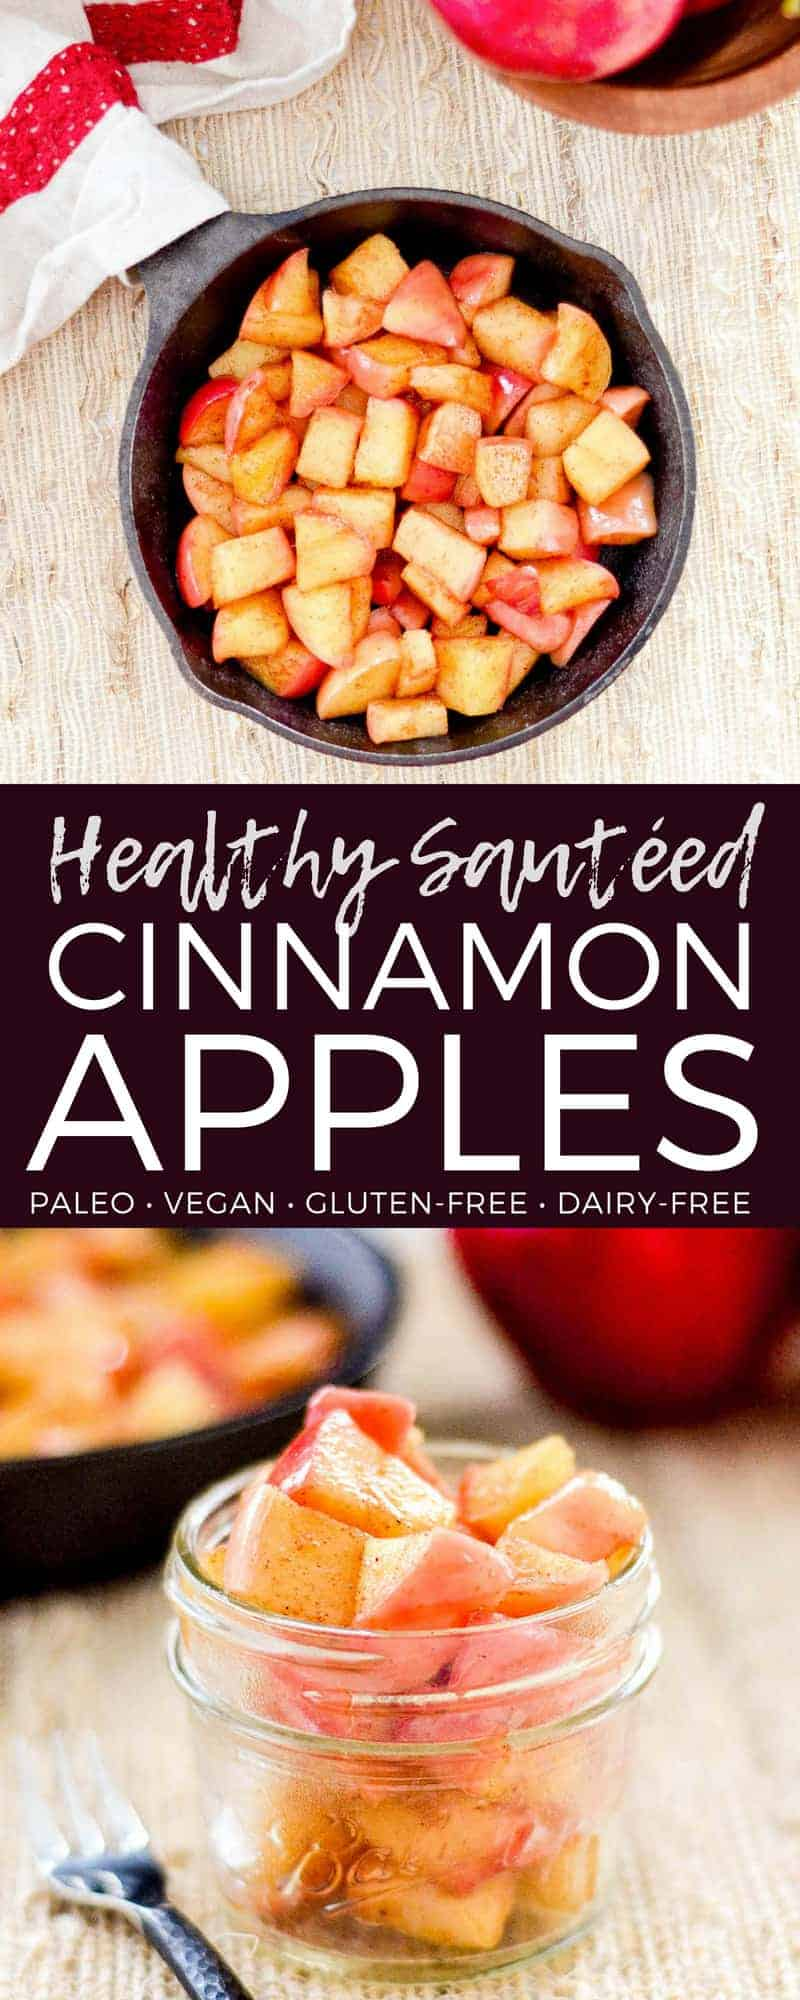 These Stovetop Cinnamon Sautéed Apples taste like a warm apple pie, but they come together in a fraction of the time and are SO much healthier! This recipe is gluten-free, dairy-free, refined sugar free, vegan AND paleo! Perfect for breakfast, a snack, or dessert!  #apples #stovetop #cinnamon #healthyrecipe #dessert #breakfast #snack #paleo #vegan #glutenfree #dairyfree #refinedsugarfree